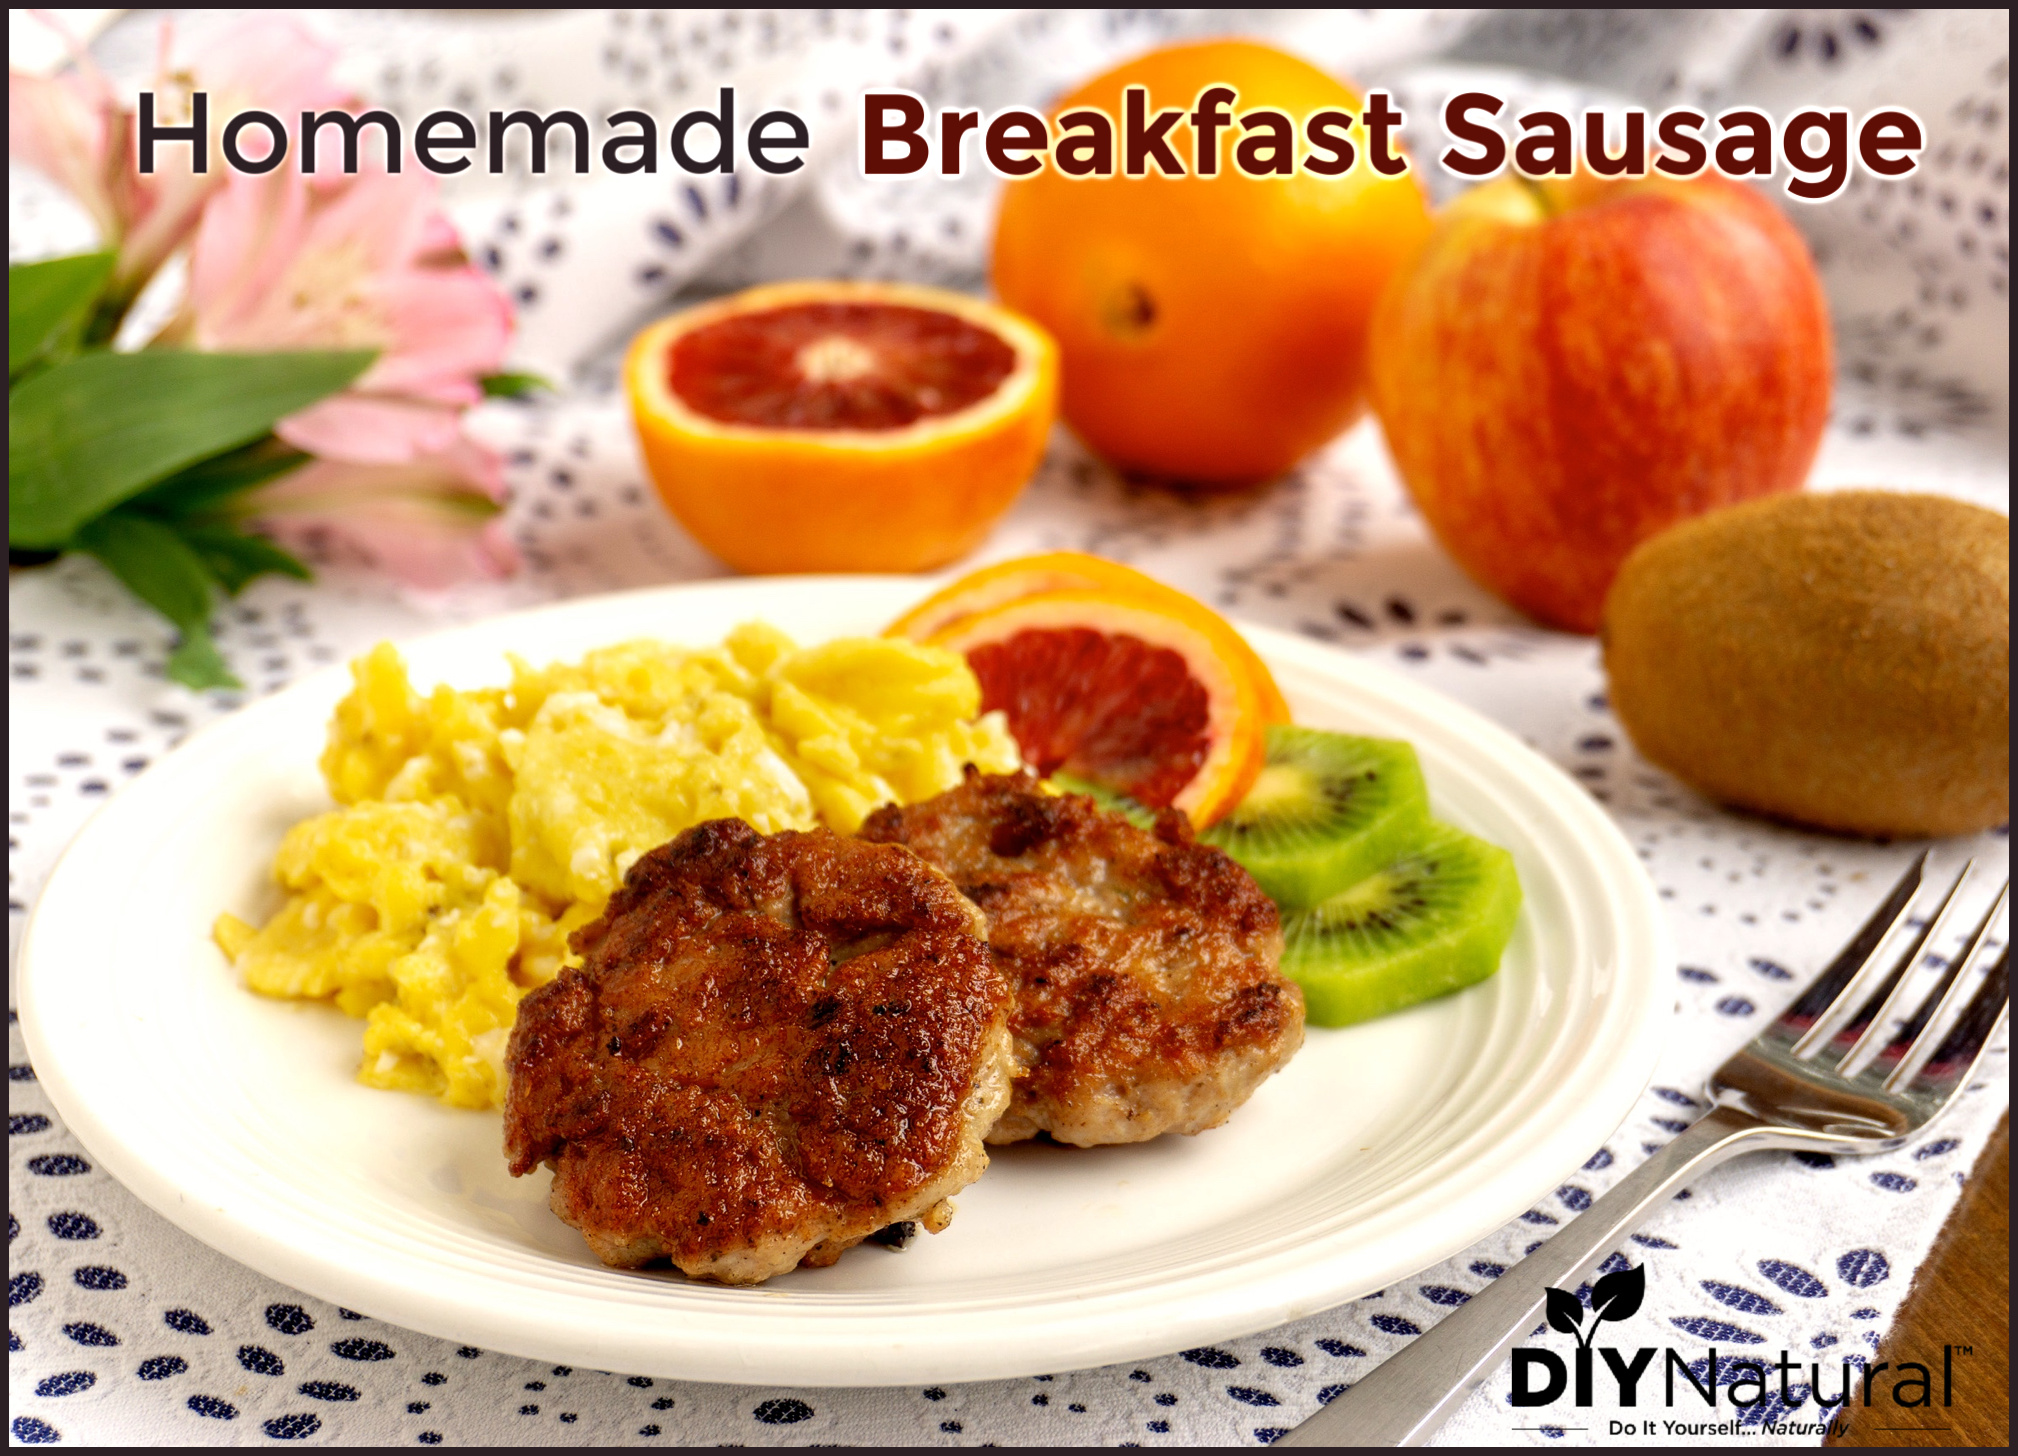 Homemade Breakfast Sausage Recipe